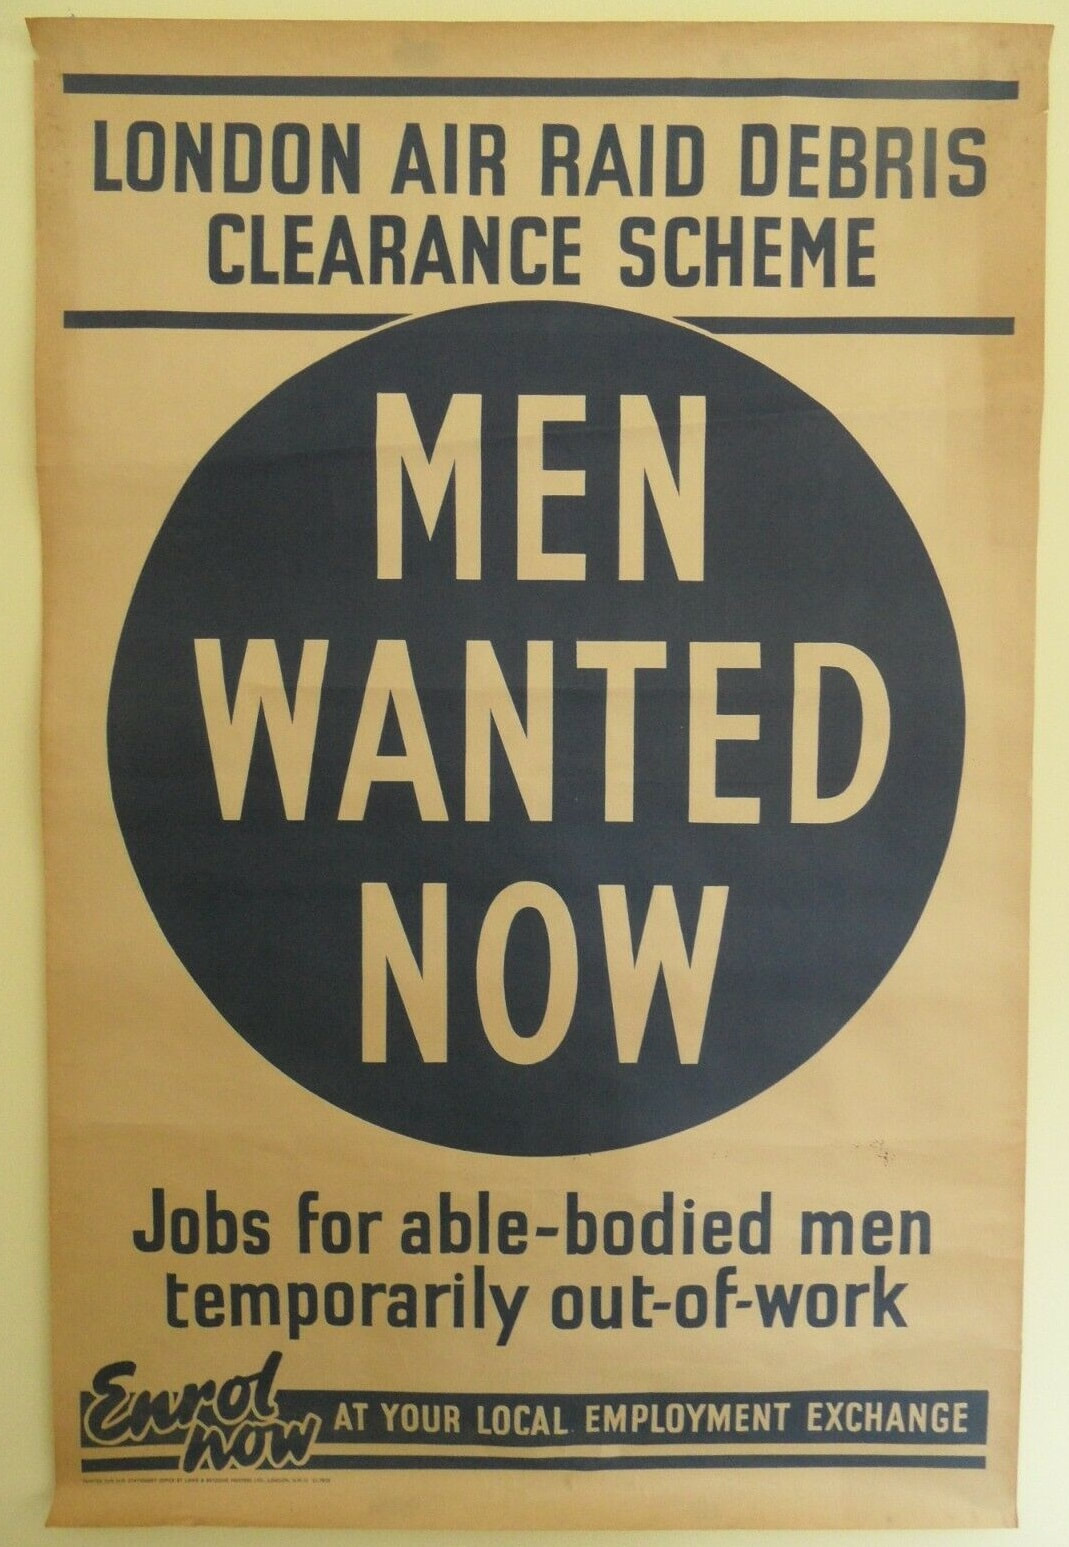 WW2 London Air Raid Debris Clearance Scheme Poster